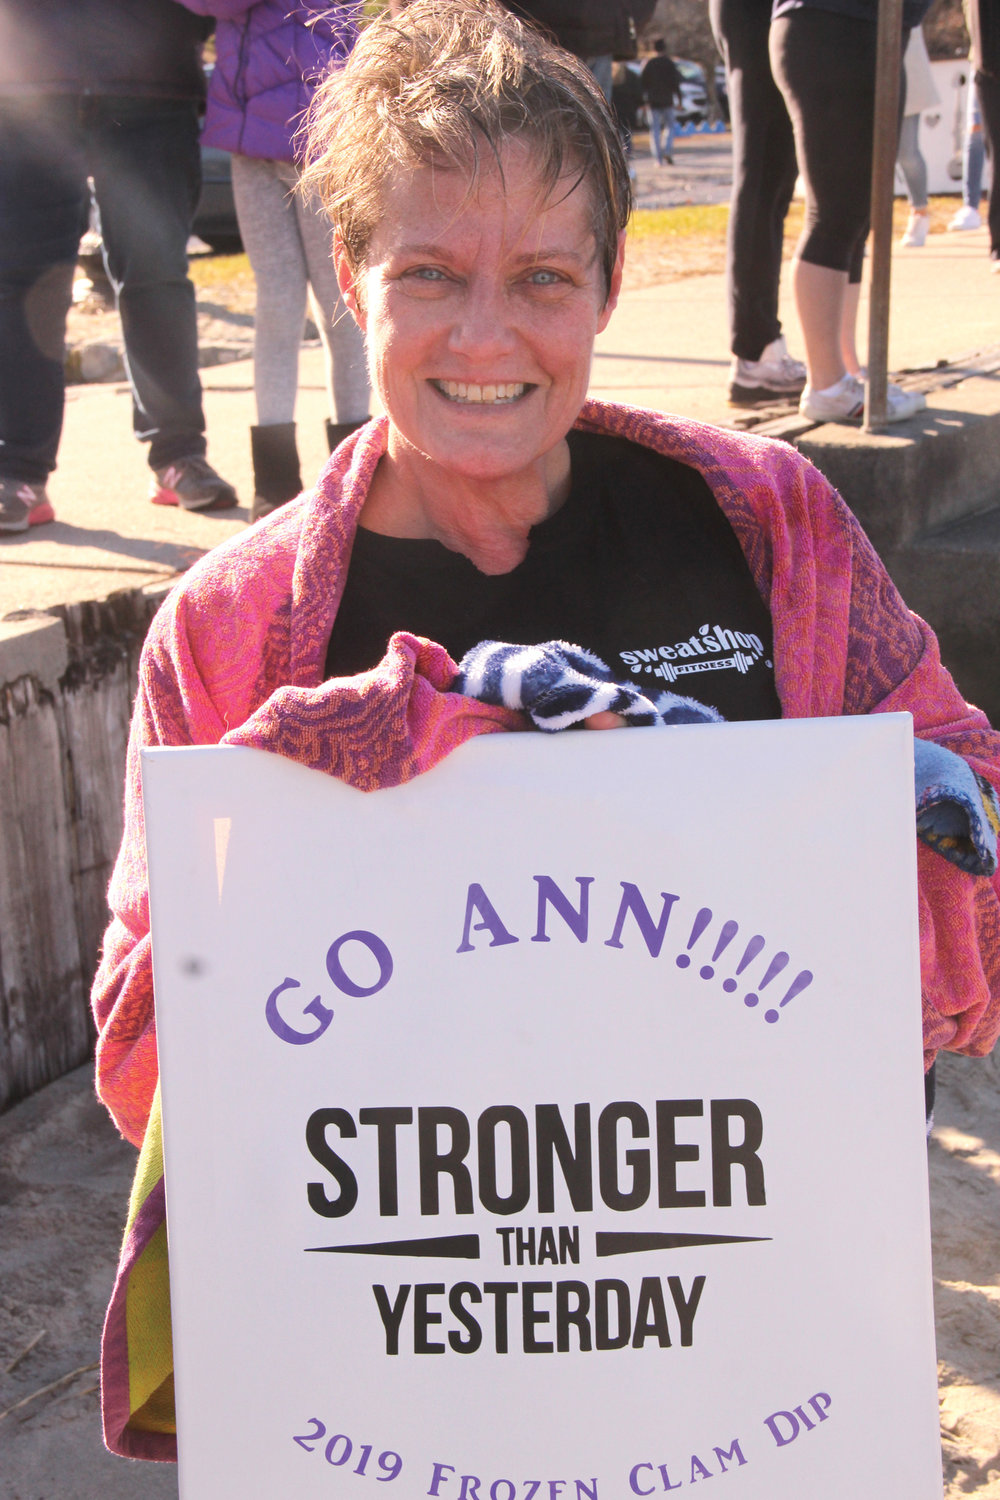 SIGN OF SUPPORT: Ann Altshuler who did the Obstaplunge displays the sign co-workers made for her.